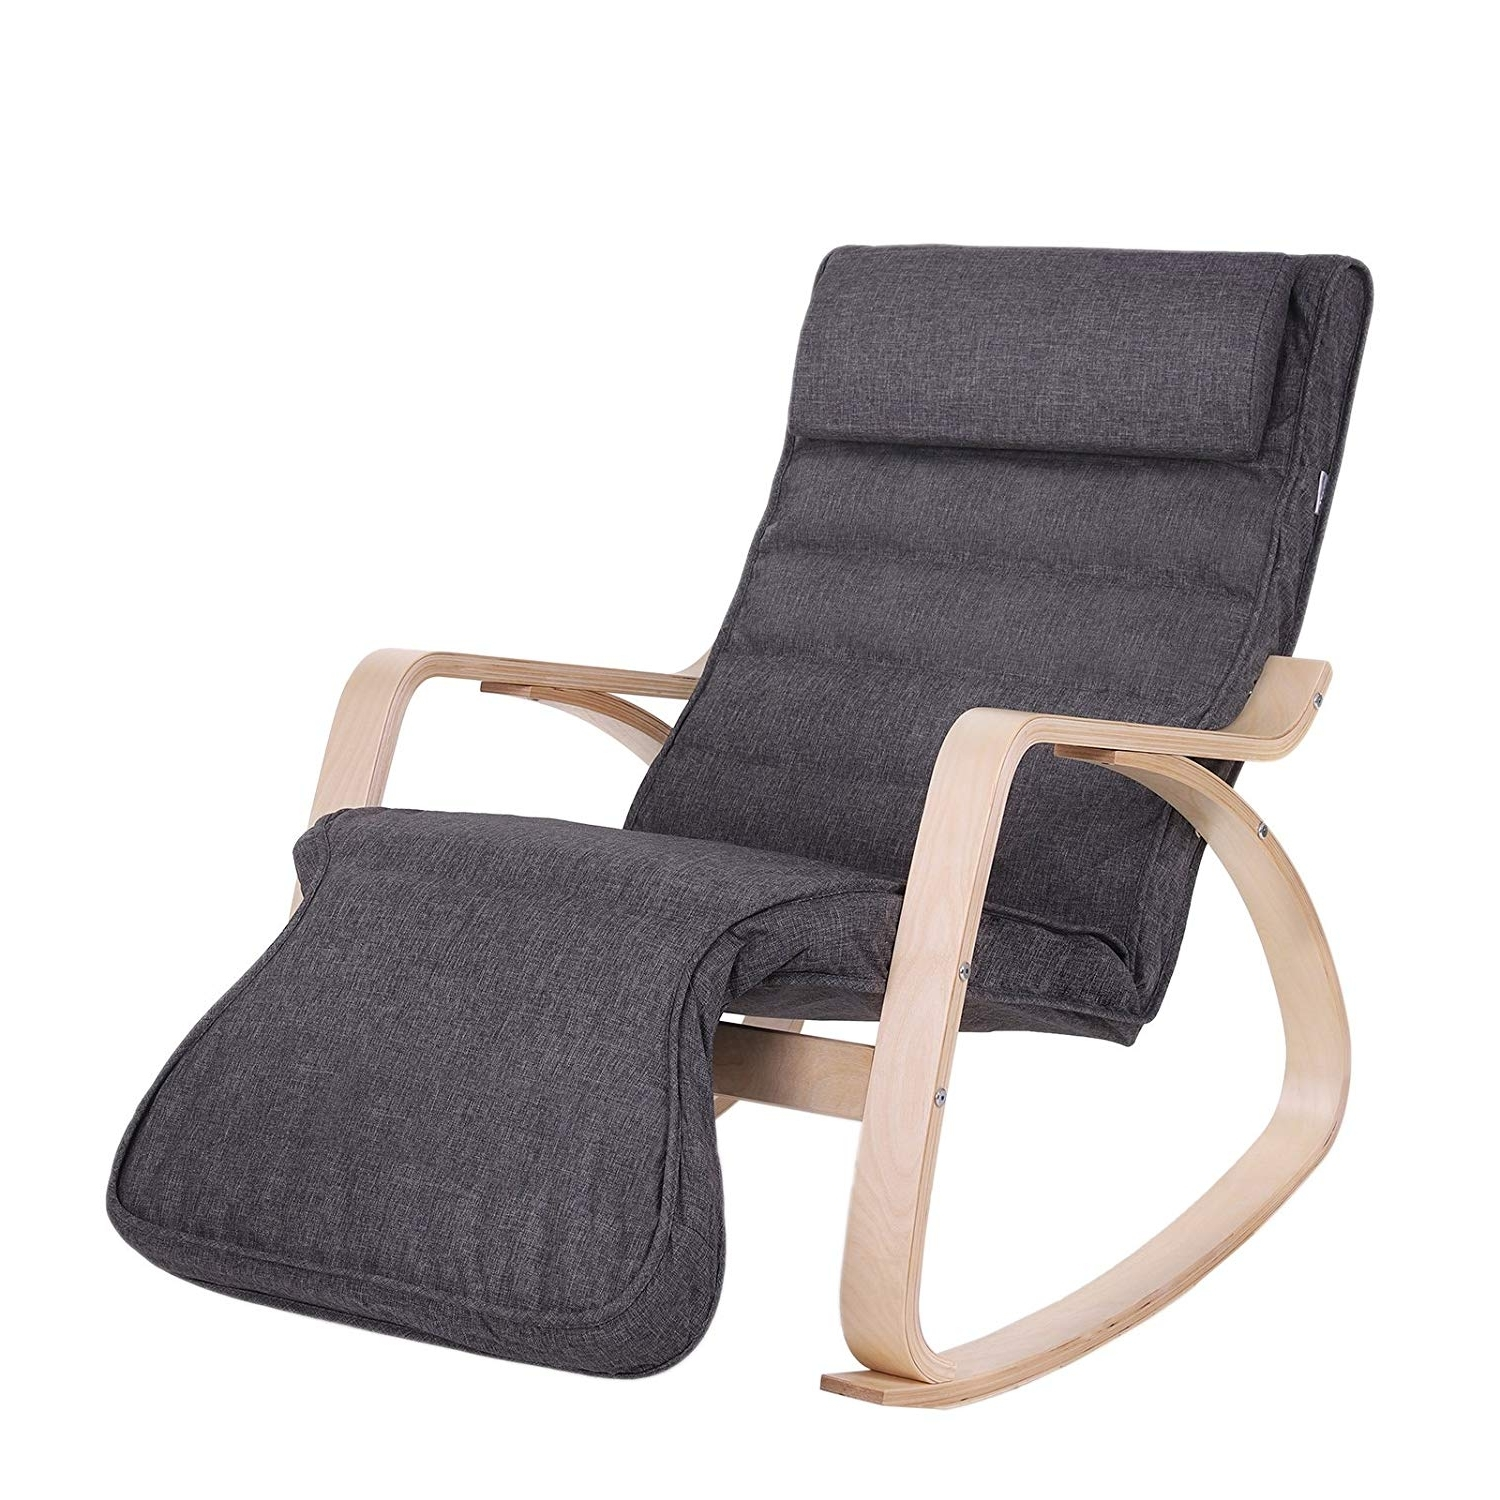 2018 Songmics Relax Rocking Chair/lounge Chair/recliners/gliders With 5 Regarding Rocking Chairs With Footrest (View 15 of 15)